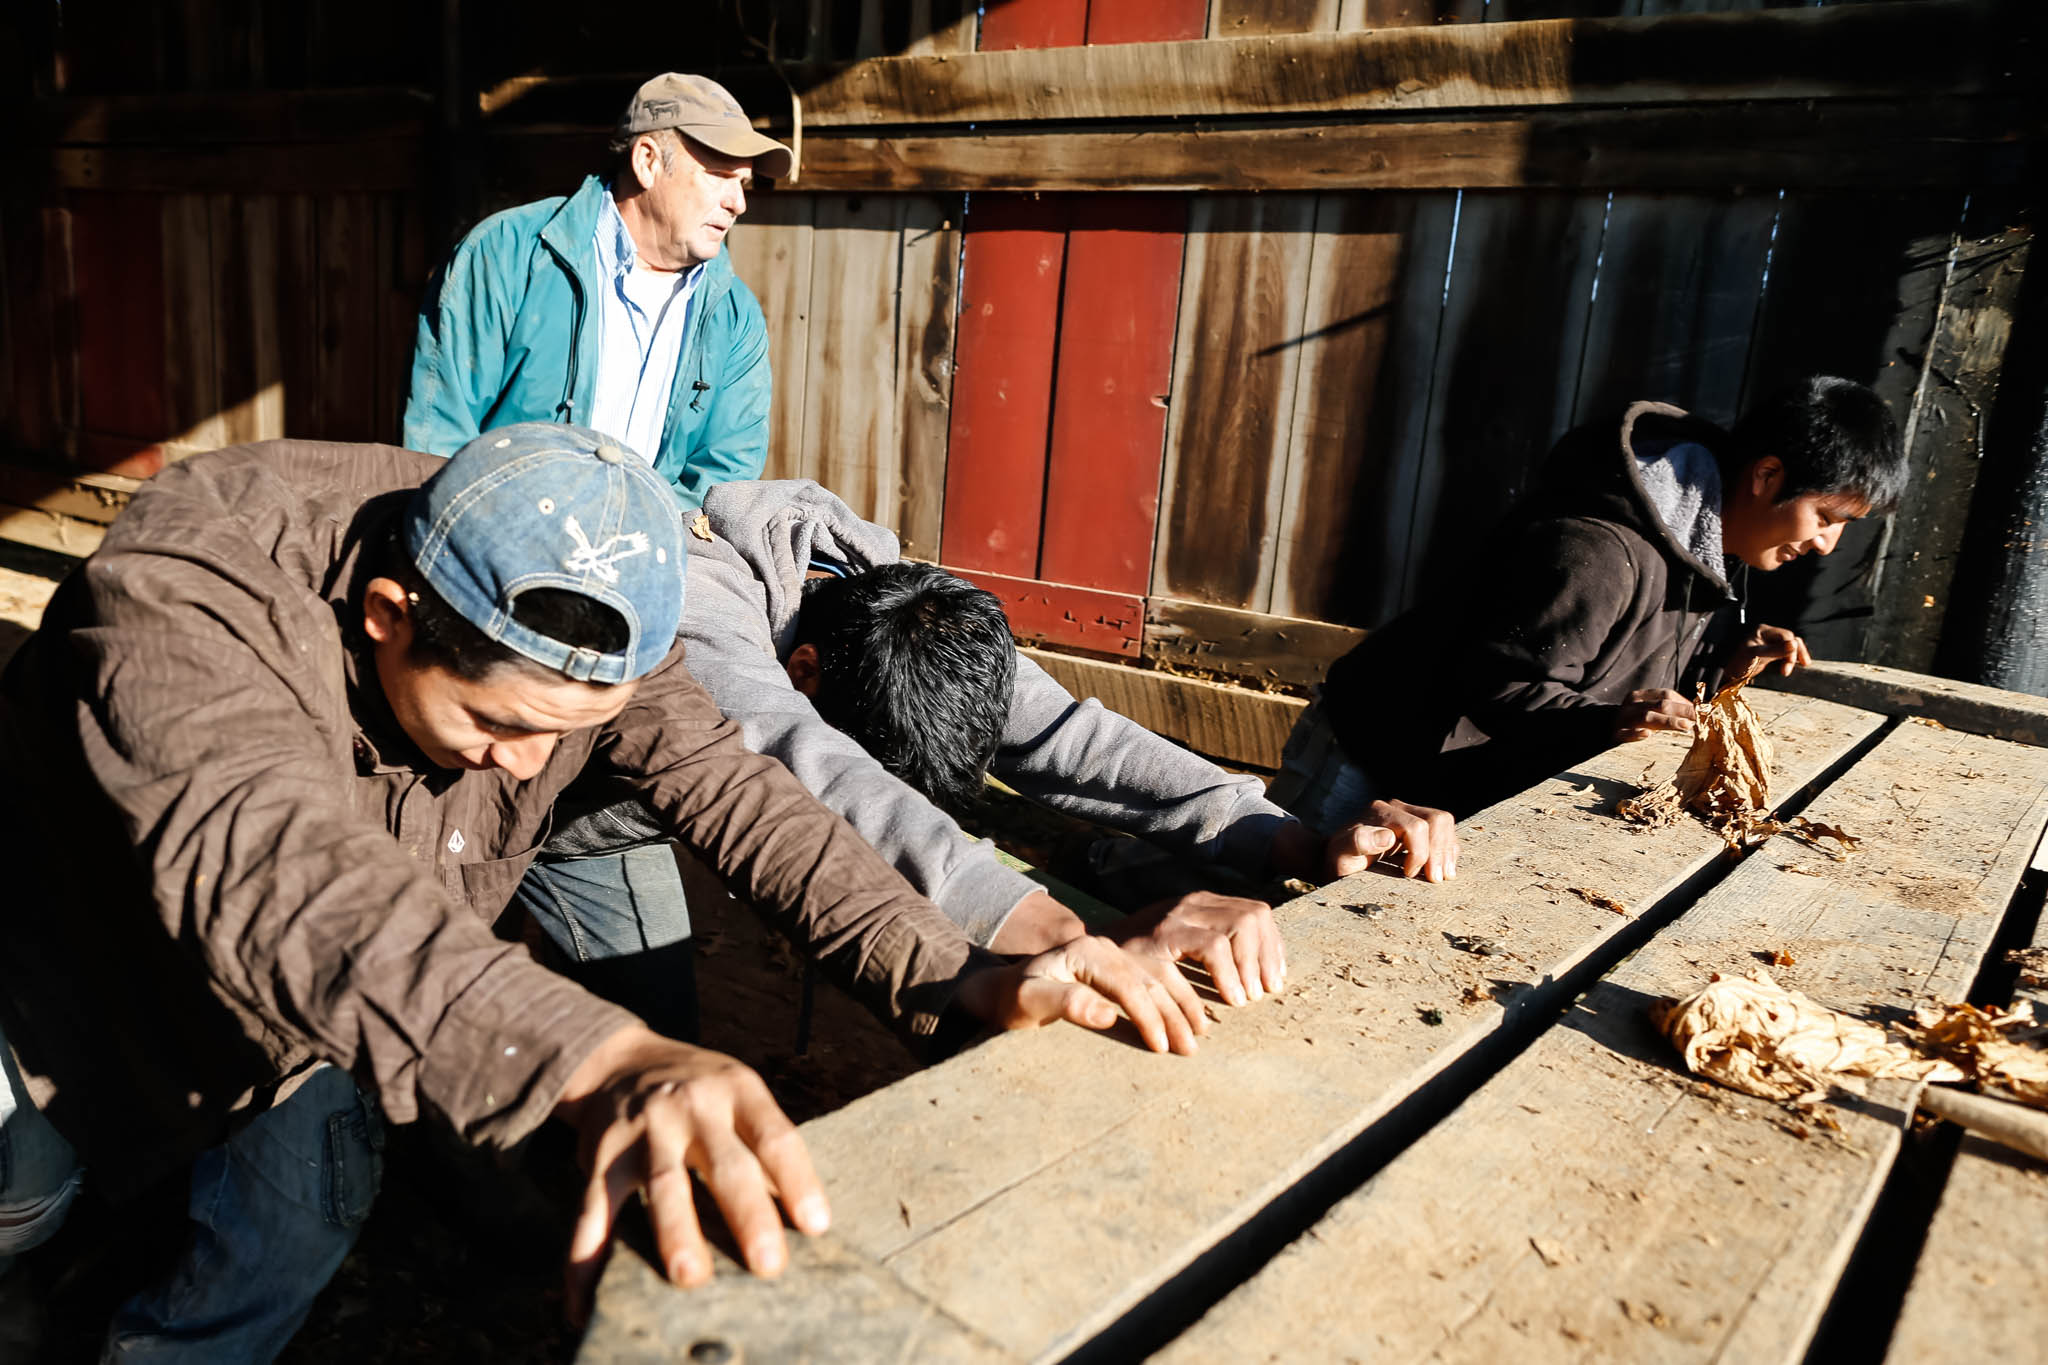 Mucci and the migrant workers remove wagons from the barn to make room for tobacco.